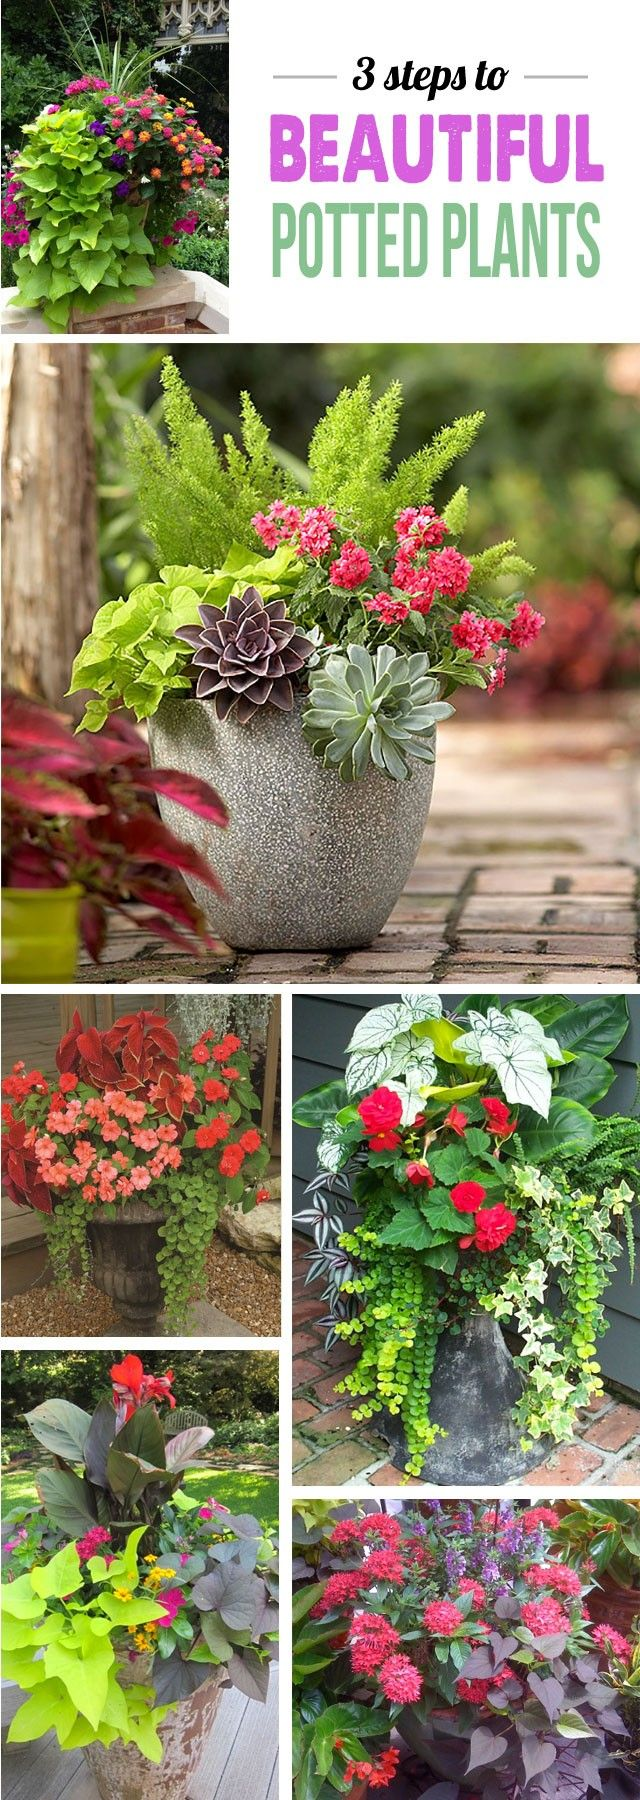 Great tips for making stunning potted plant arrangements – can't wait to add some color to my deck!